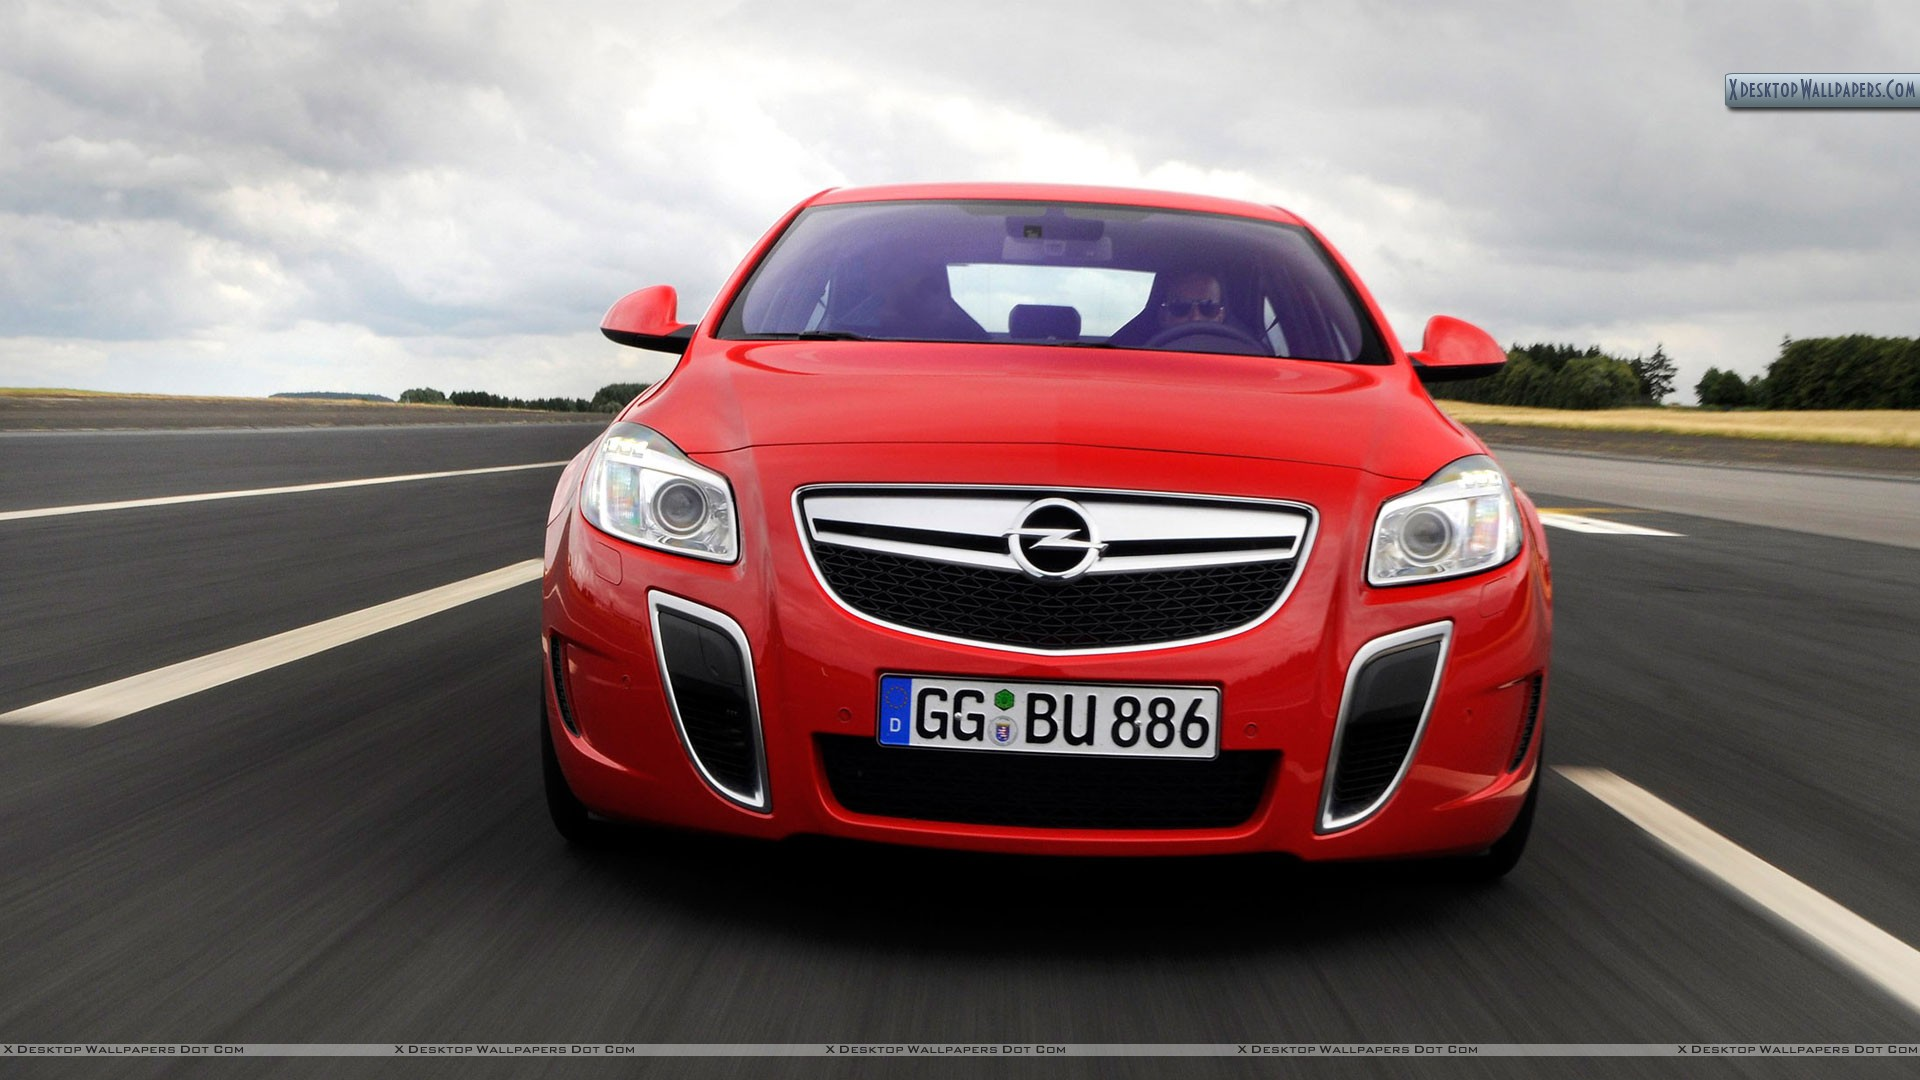 Opel Insignia Opc Unlimited Red Color Free Download Image Of